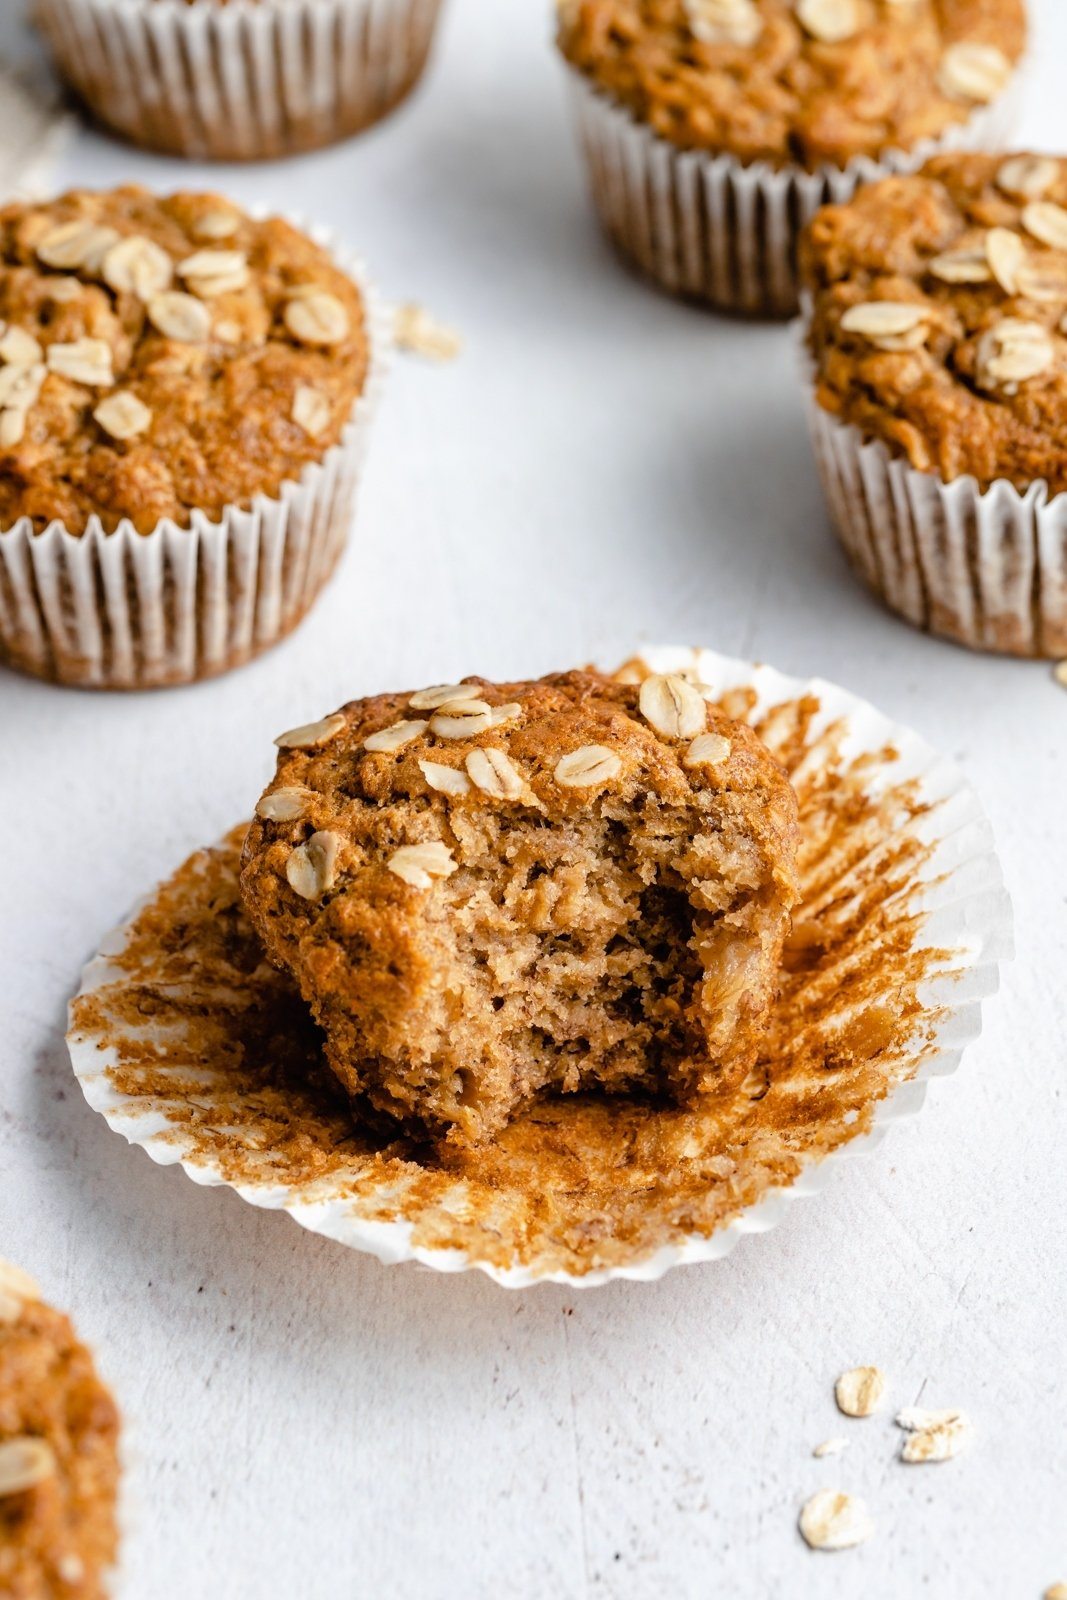 vegan banana oatmeal muffin with a bite taken out